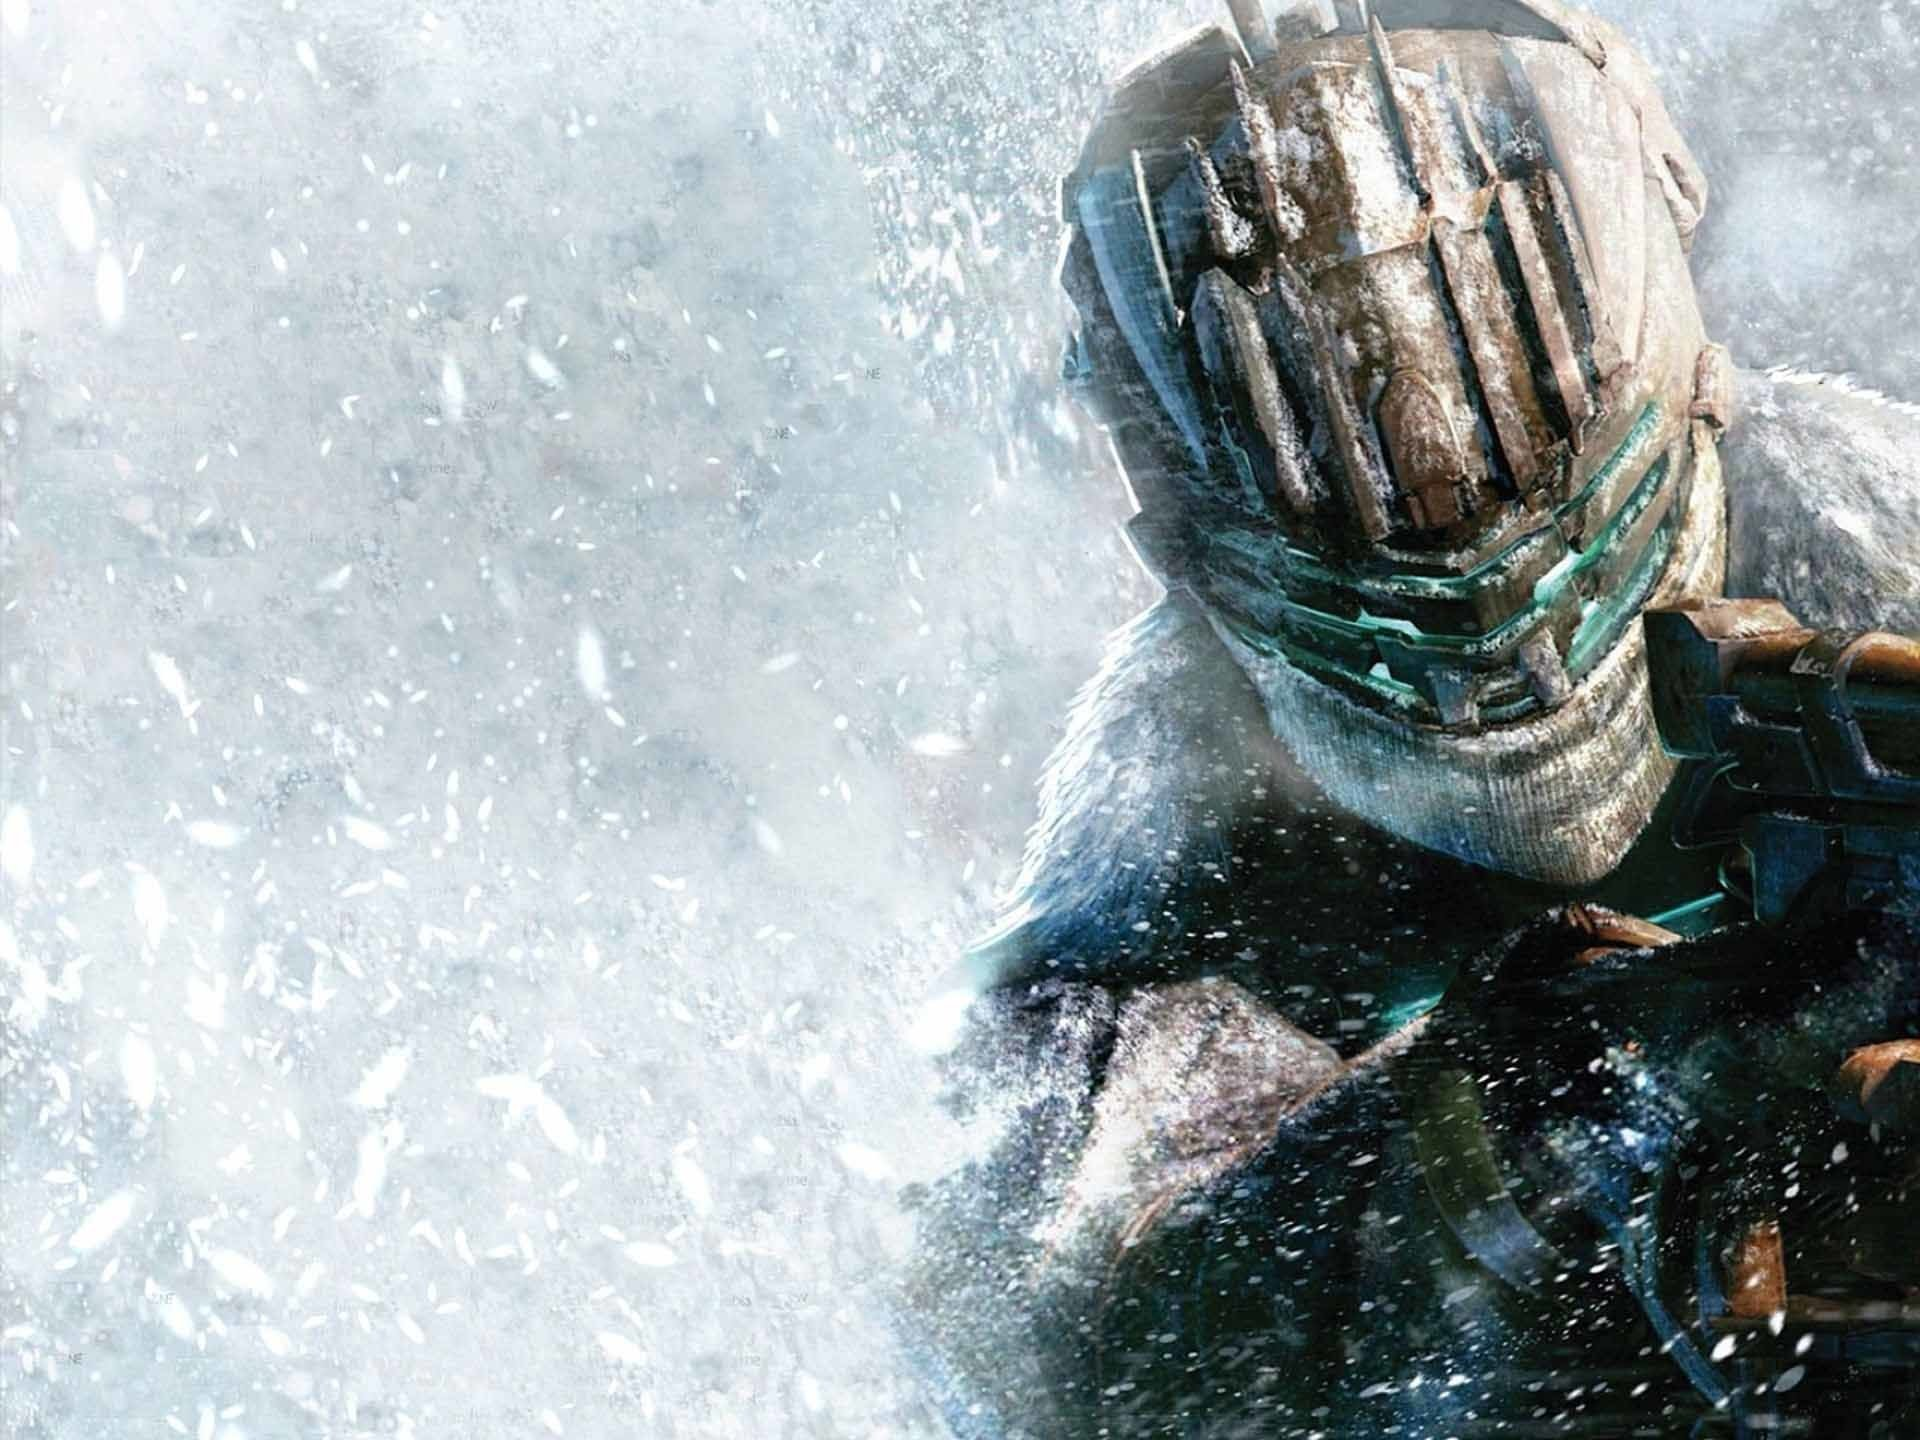 Battlefield 3 Iphone Wallpaper Dead Space 3 Full Hd Wallpaper And Background Image